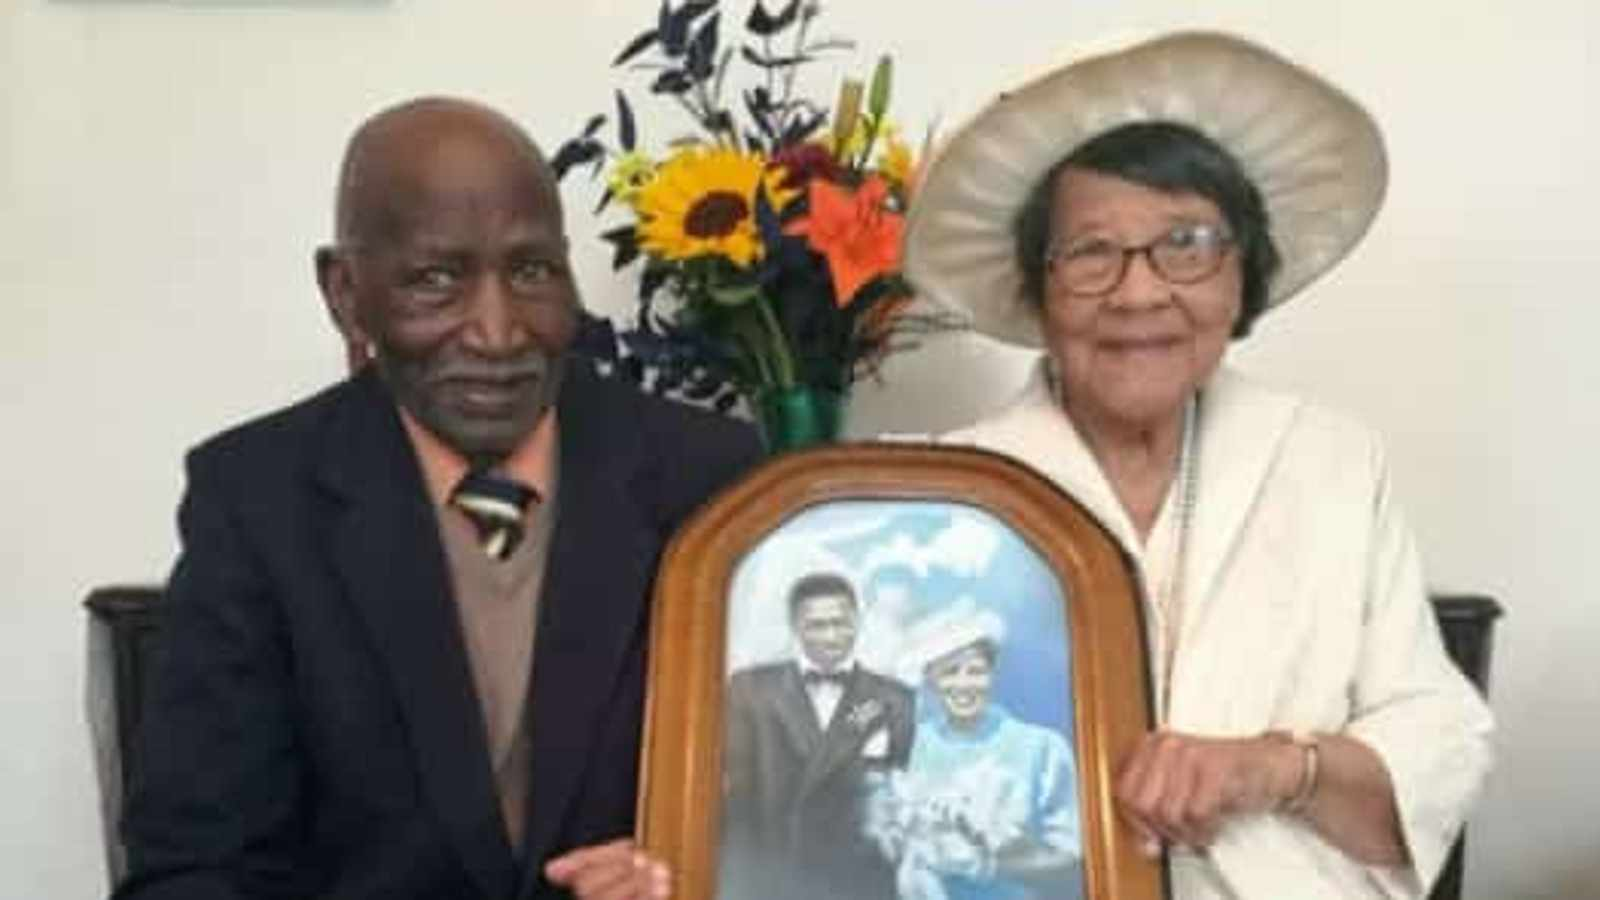 End of 70-year marriage: George, 92, and Dora, 93, pass away just days apart